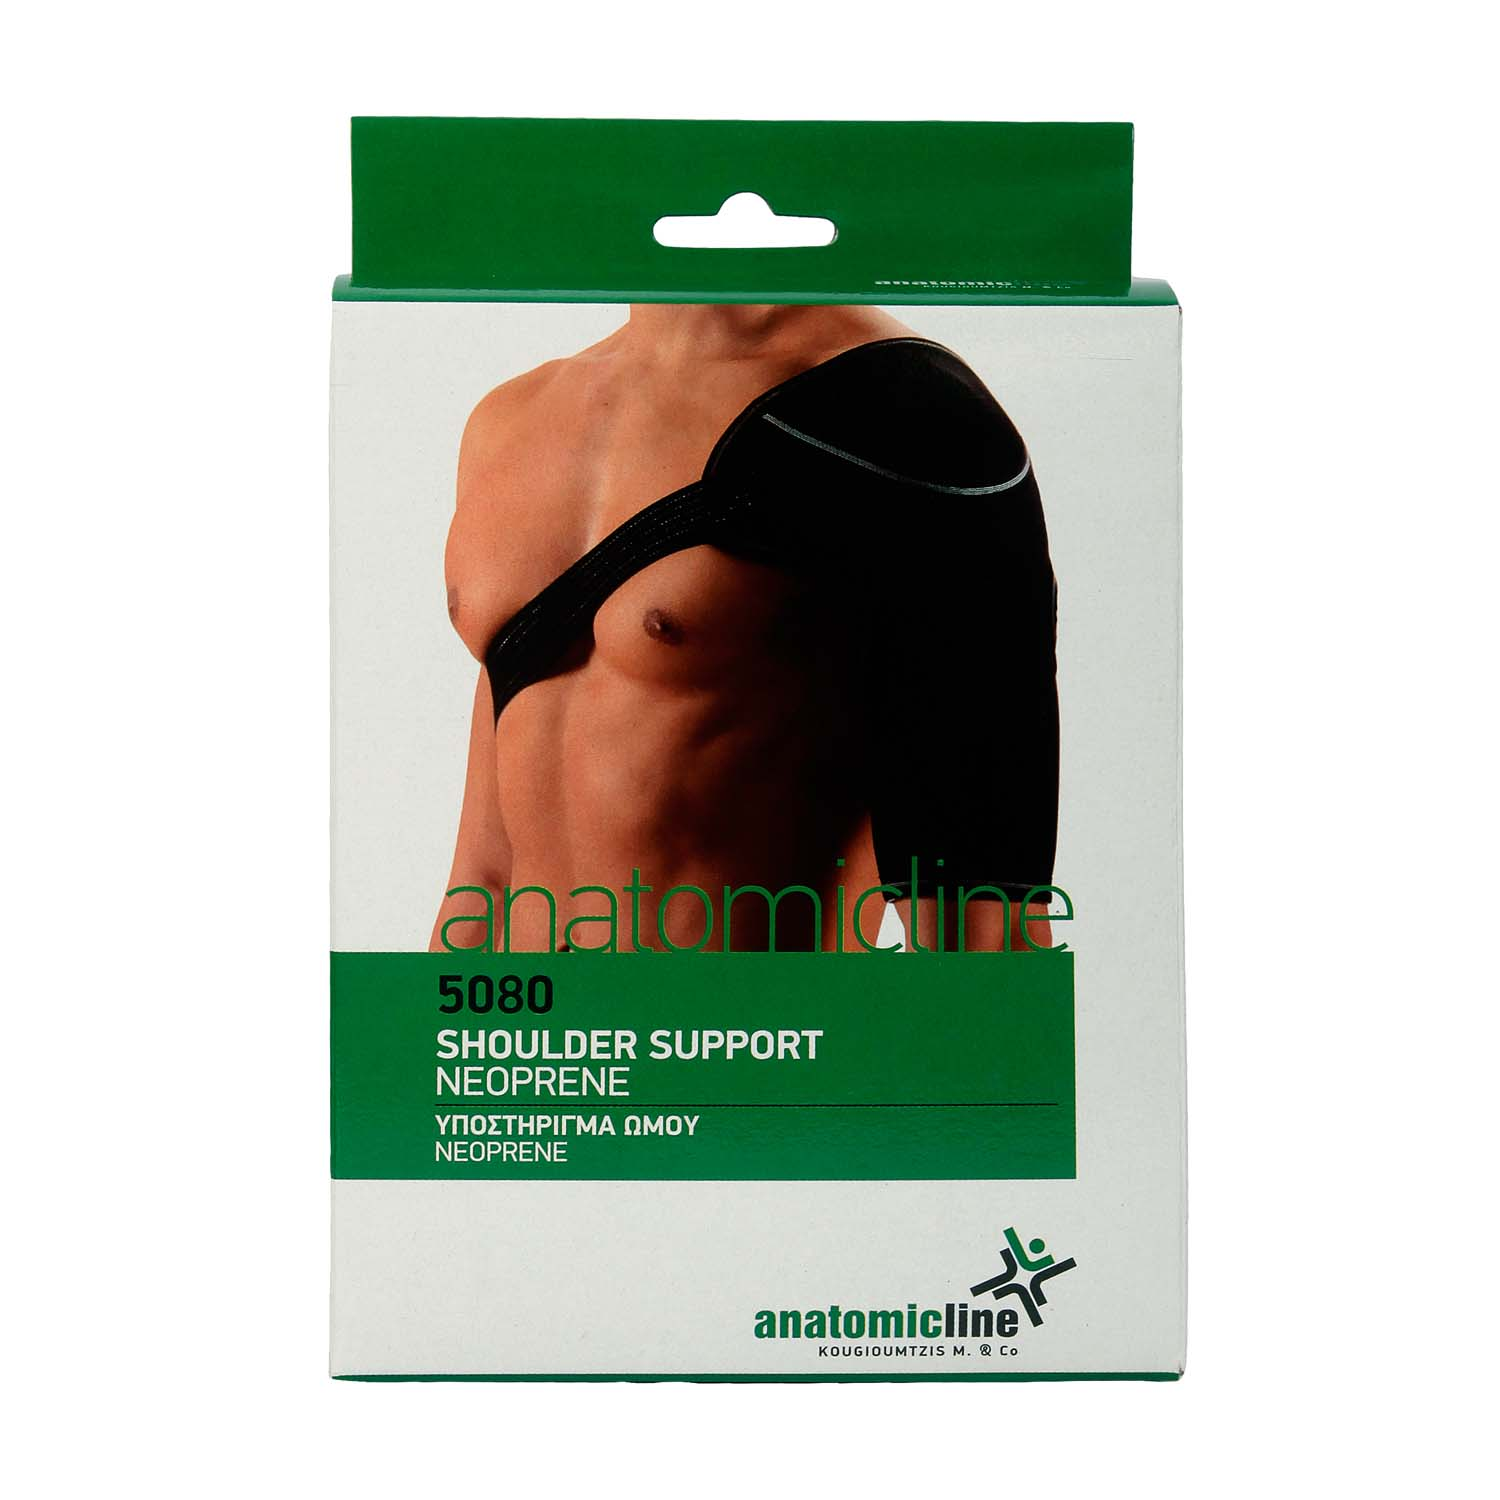 Shoulder support - Neoprene